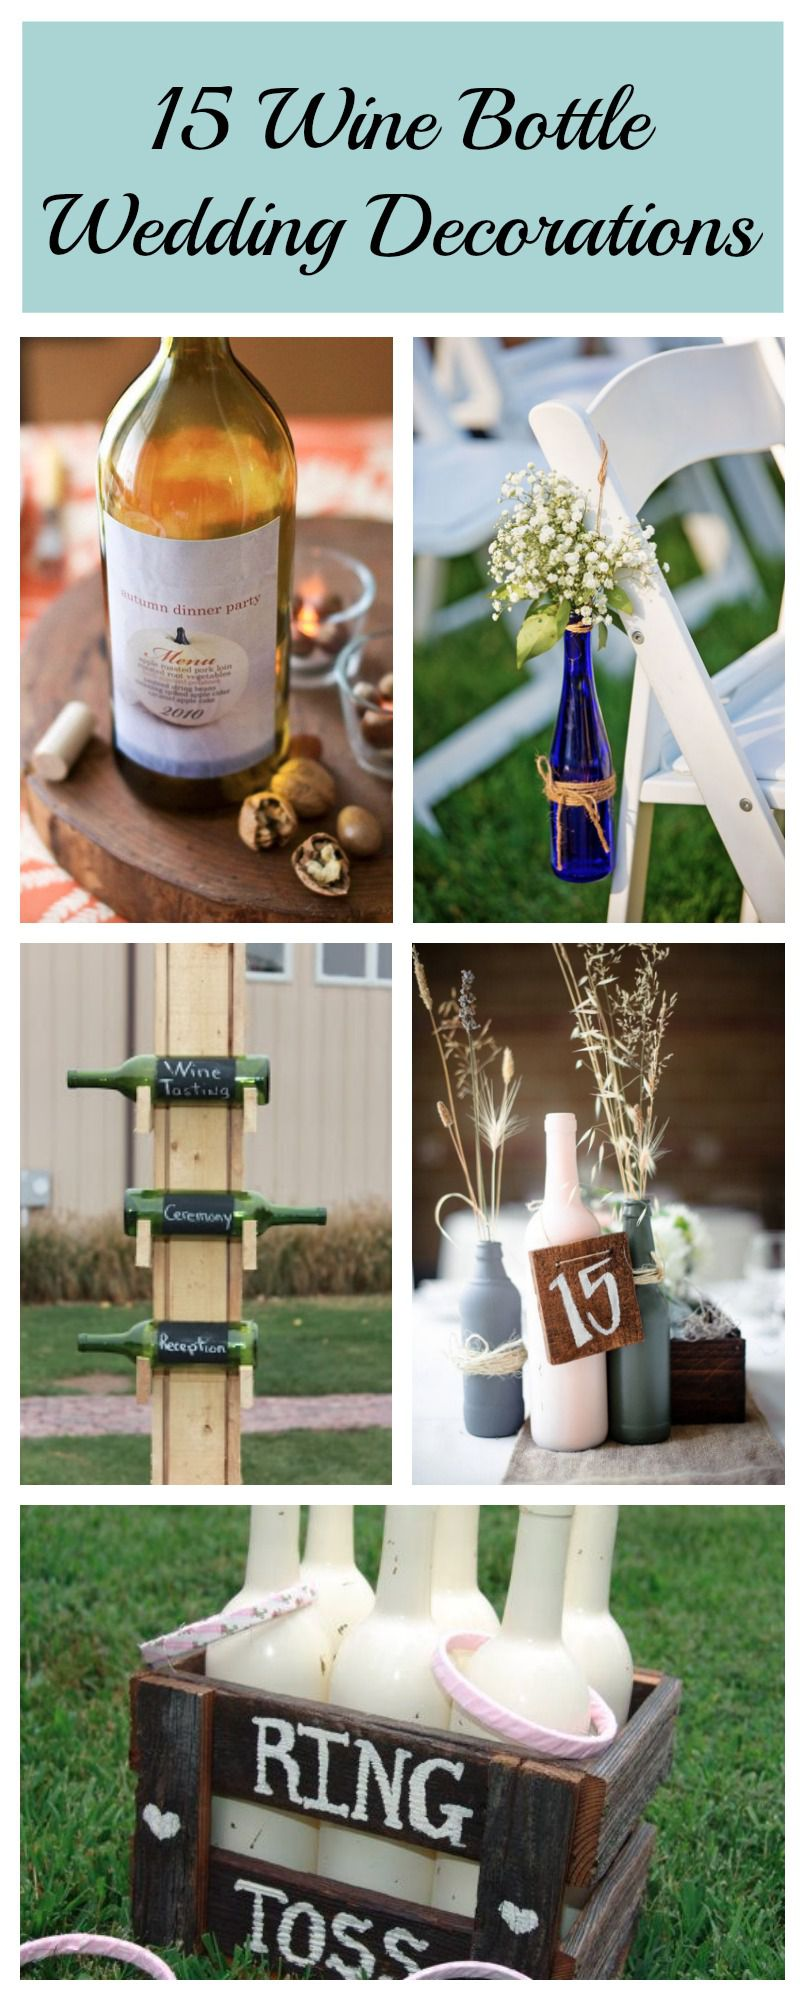 15 Ways To Decorate Your Wedding With Wine Bottles Rustic Wedding Chic